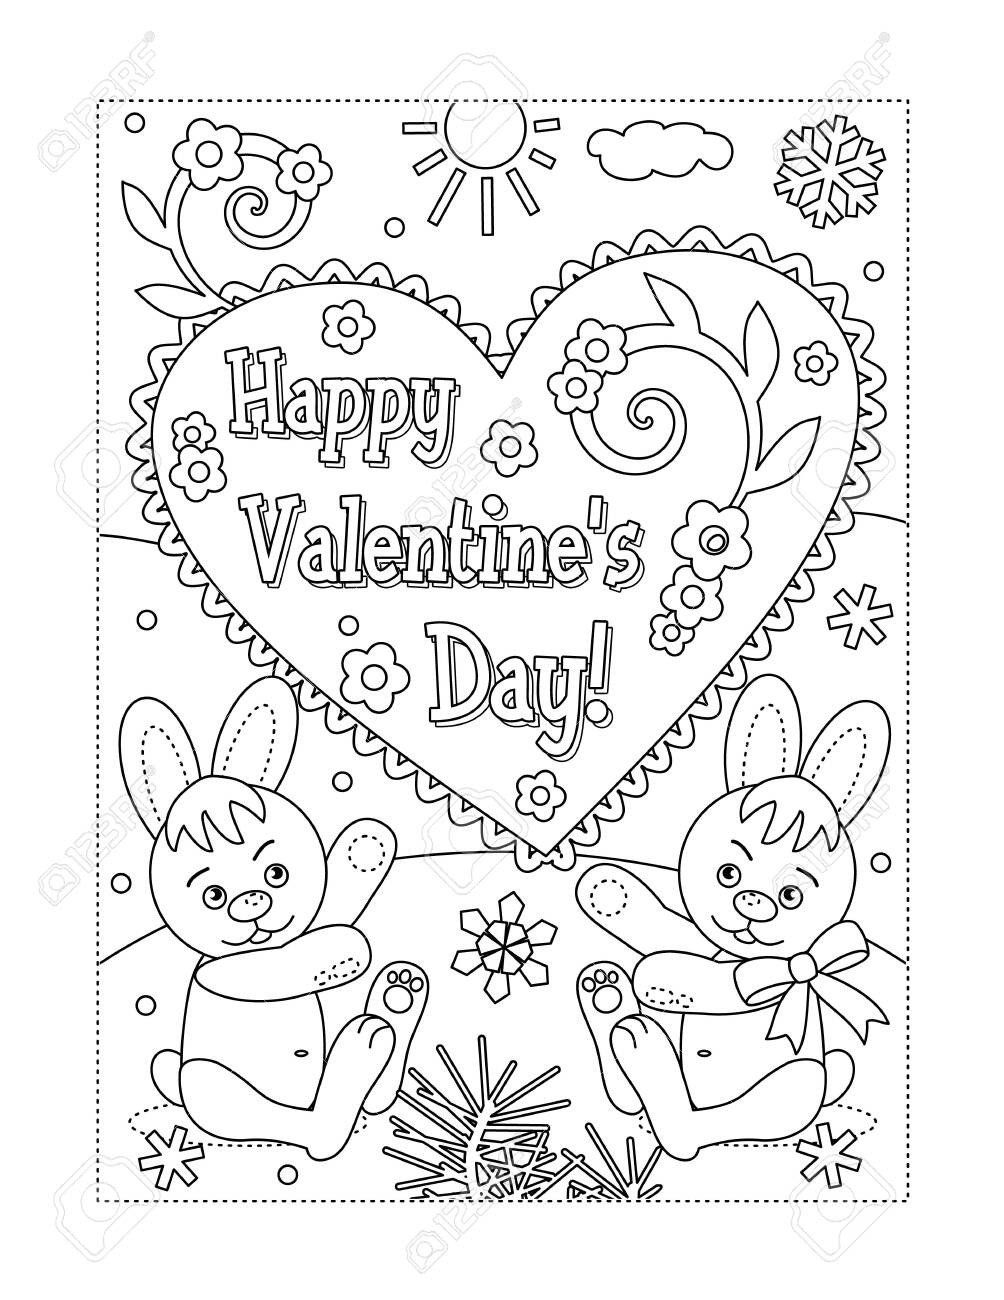 Color By Number Valentines Day Coloring Book Coloring Book Valentines Day Pages For In 2020 Valentines Day Coloring Page Valentine Coloring Pages Valentine Coloring